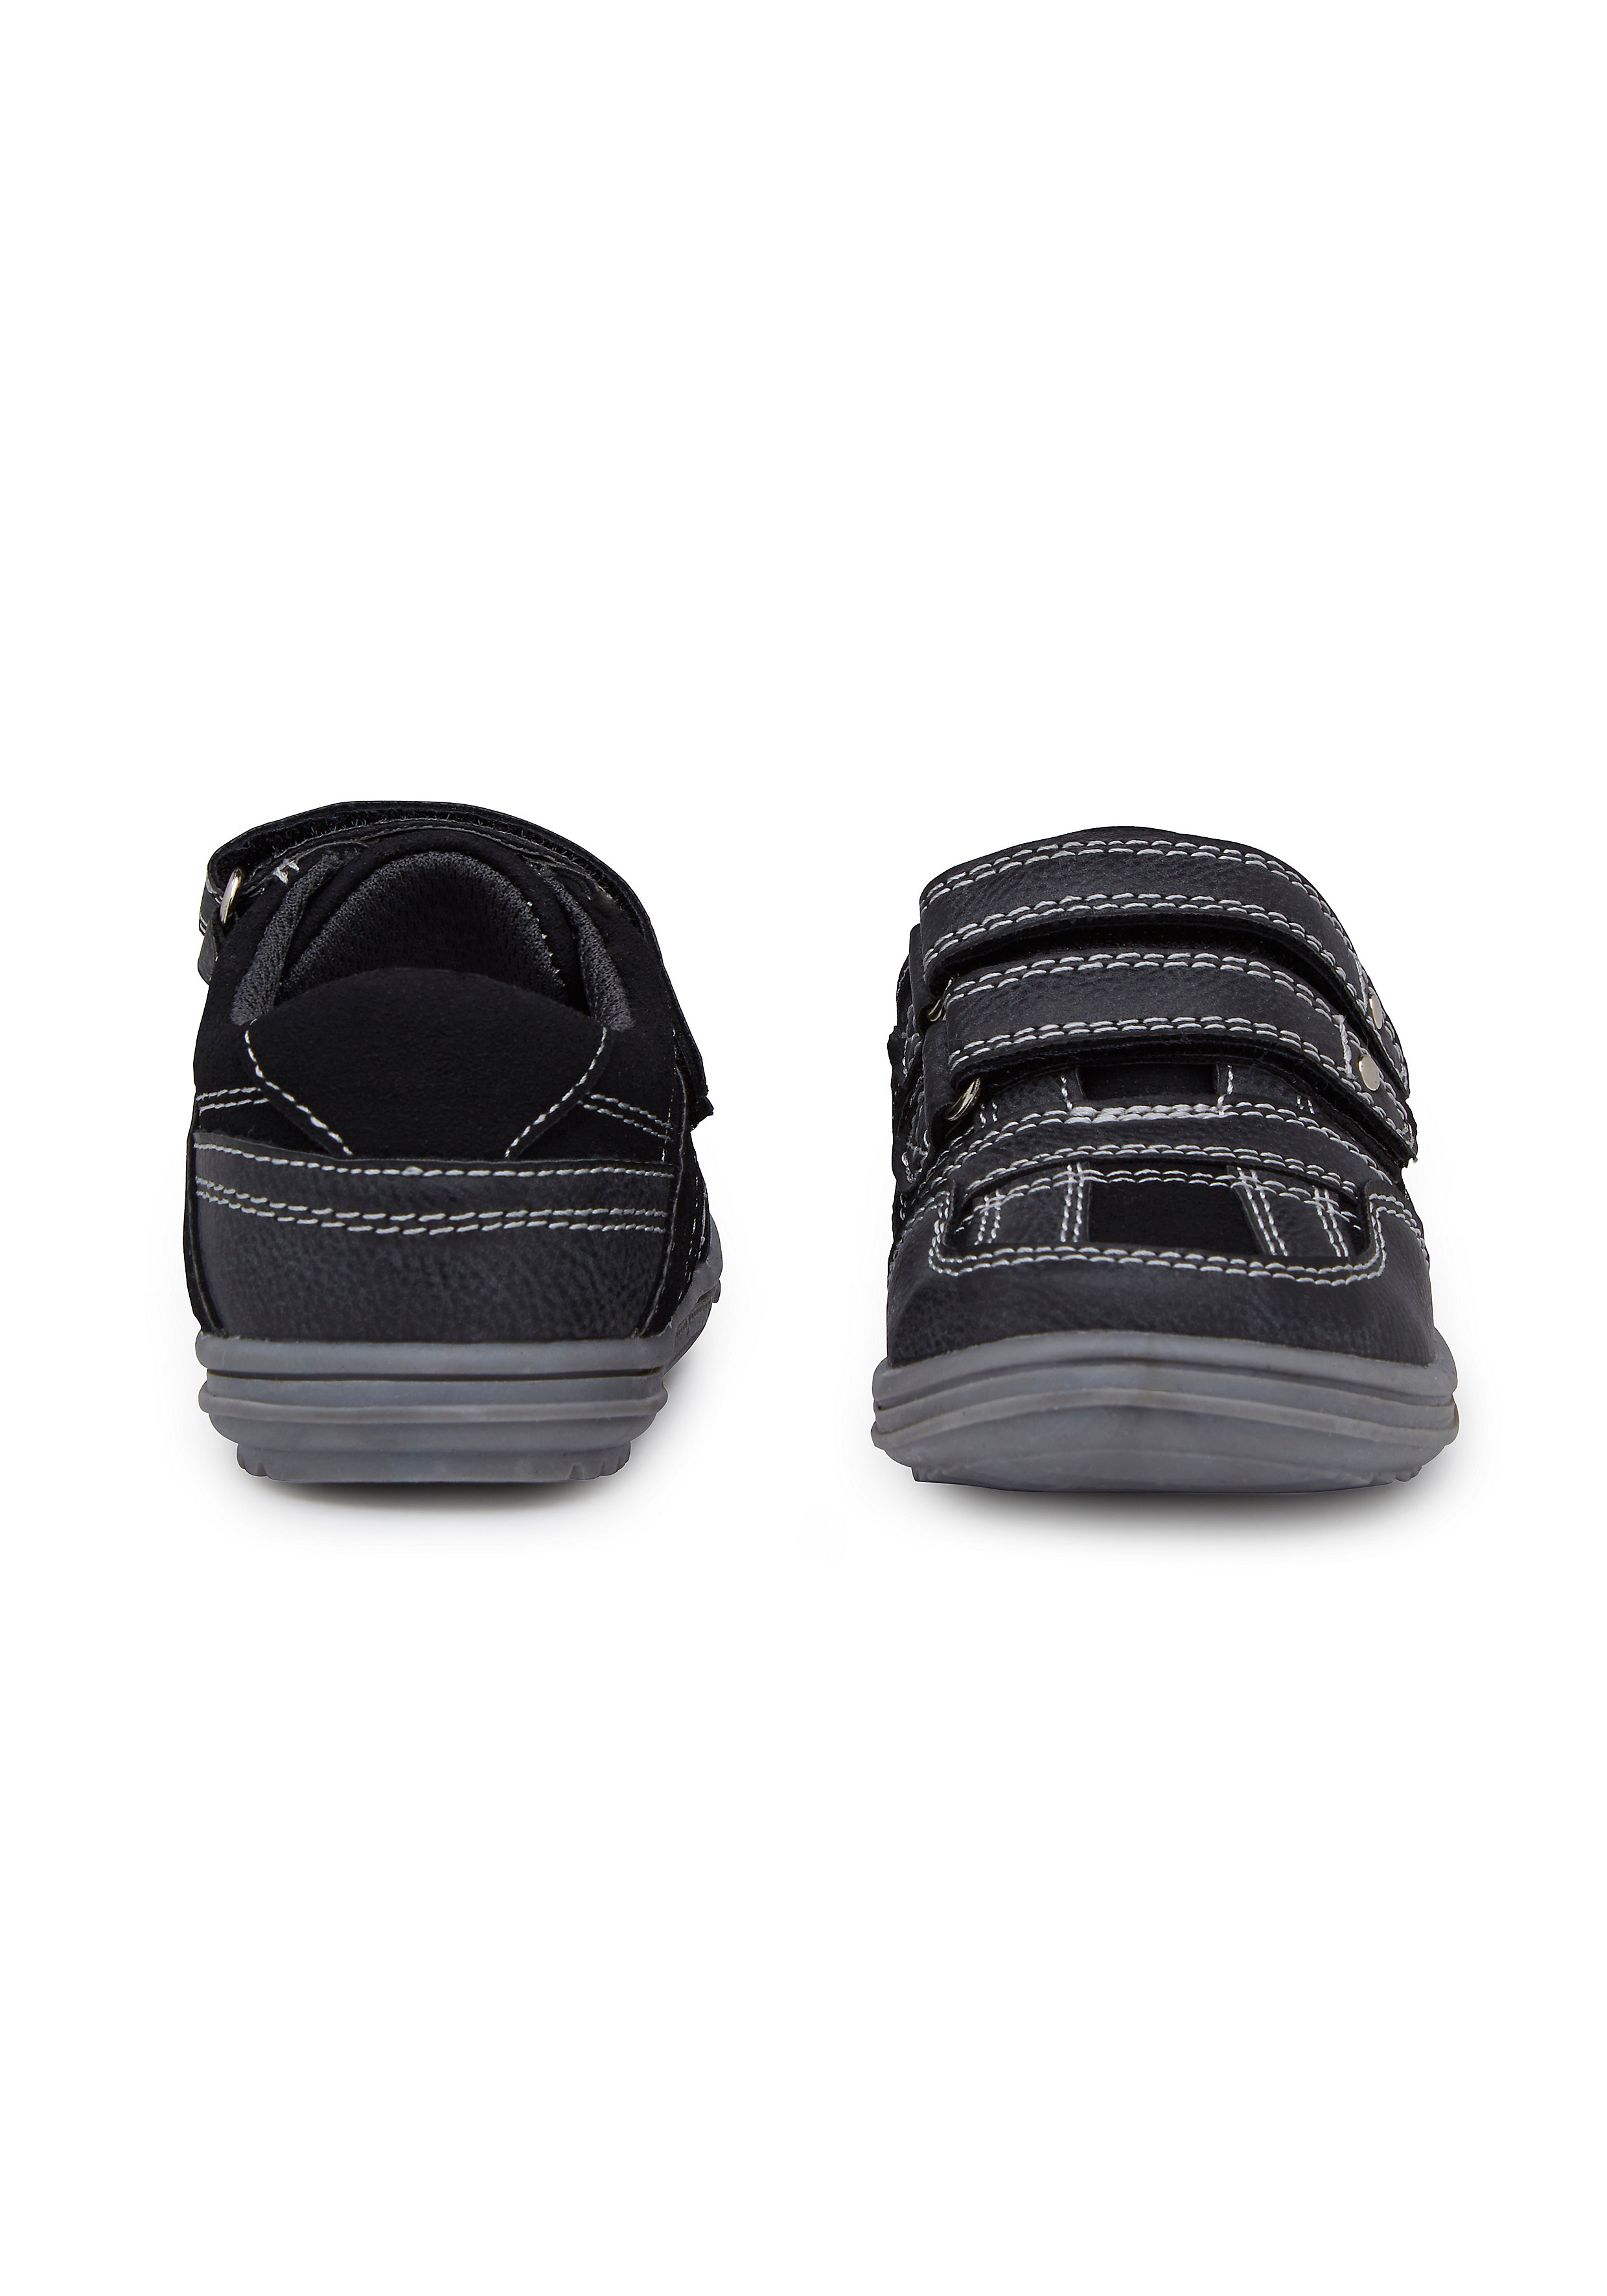 Mothercare | Boys First Walker Trainers - Black